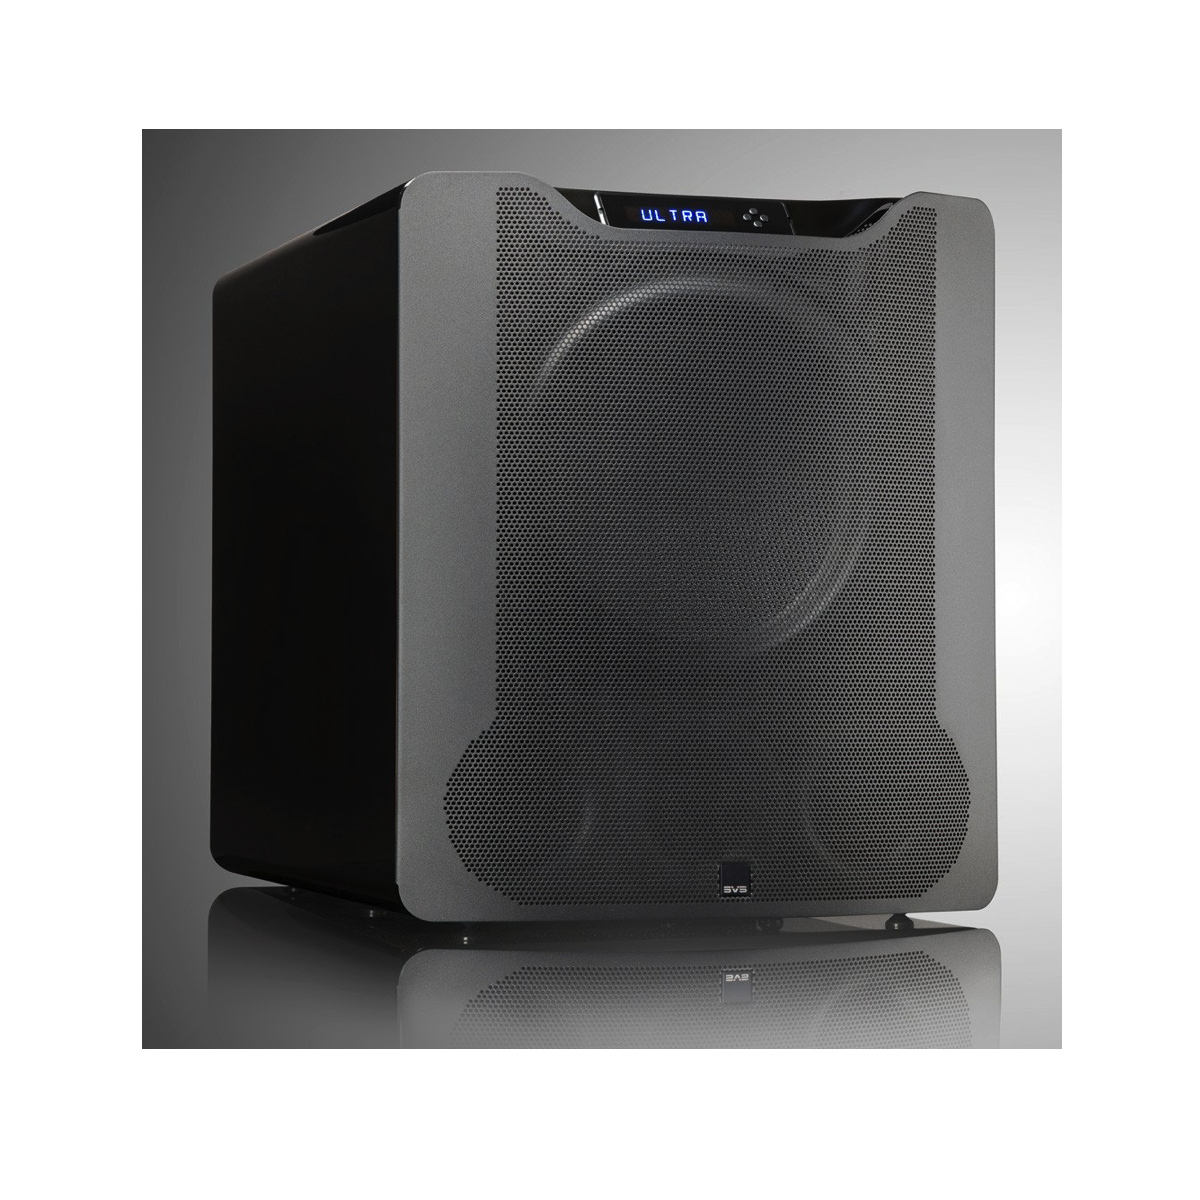 SVS Sound PB-16 Ultra - Active Subwoofer - Piano Gloss Black, SVS Sound, Subwoofer - AVStore.in